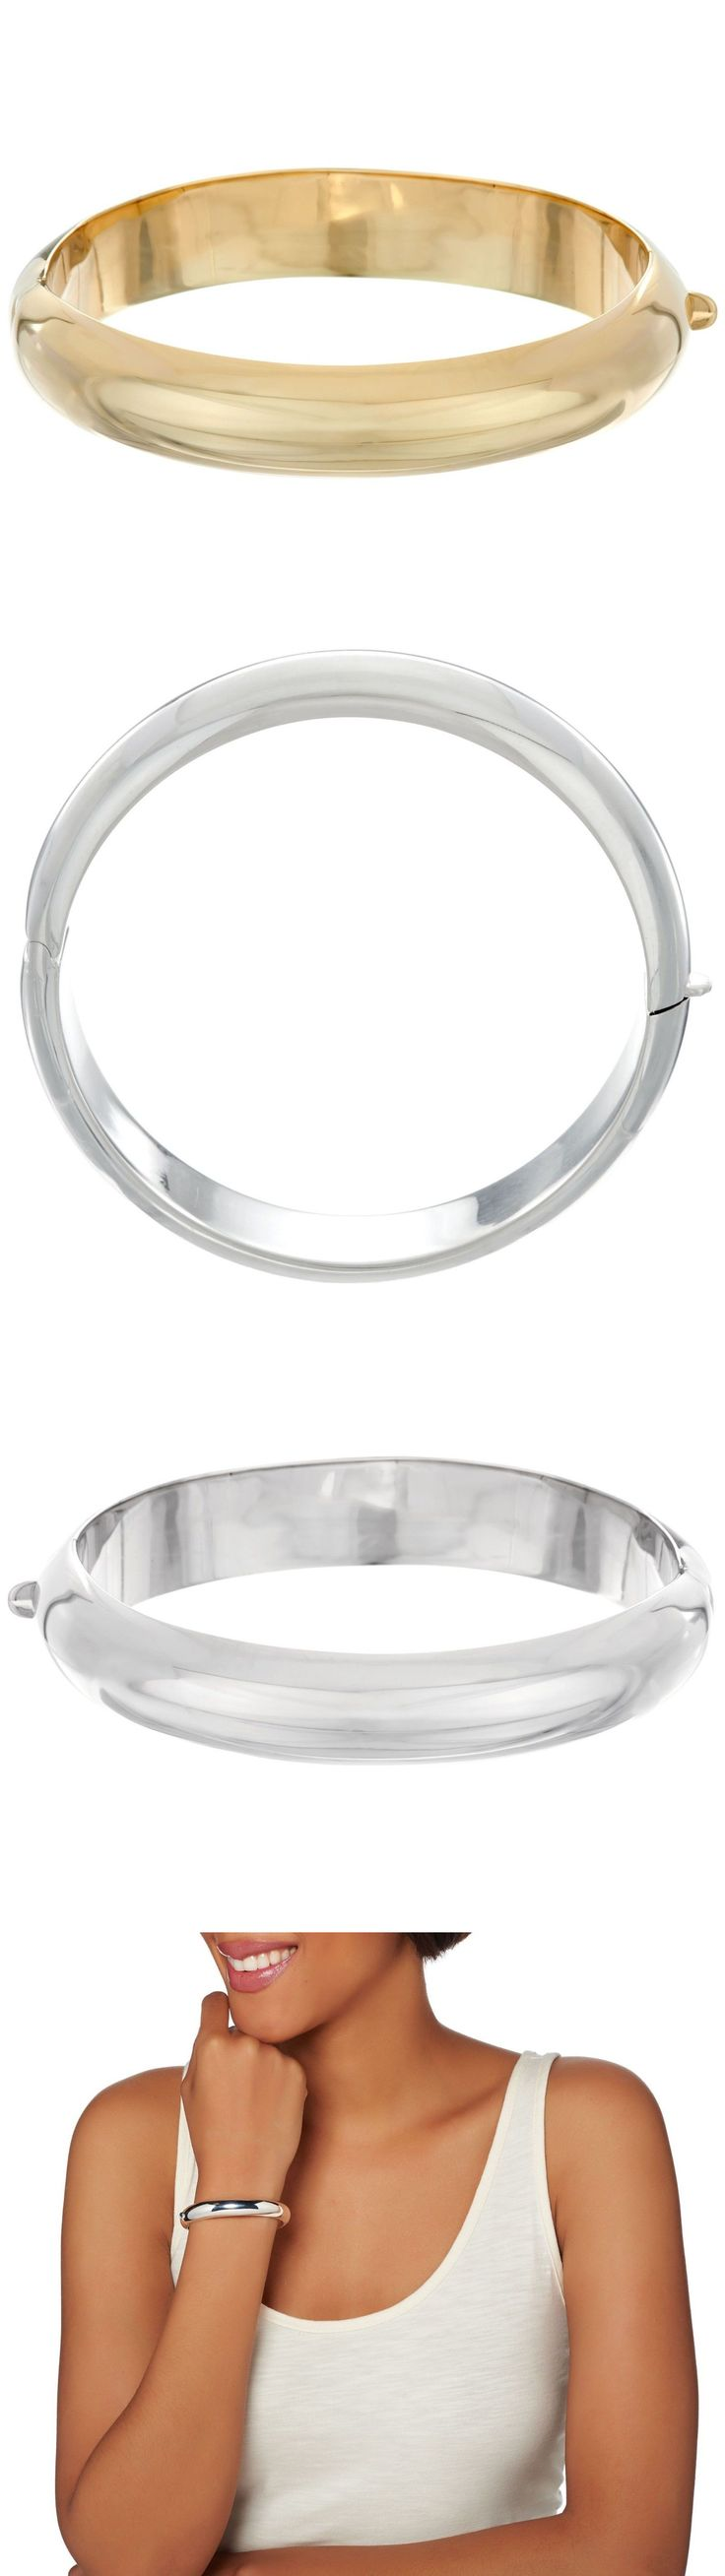 Precious Metal without Stones 164313: Shiny Polished Hinged Bangle Bracelet 14K Yellow Gold Clad Sterling Silver Qvc -> BUY IT NOW ONLY: $76.7 on eBay!